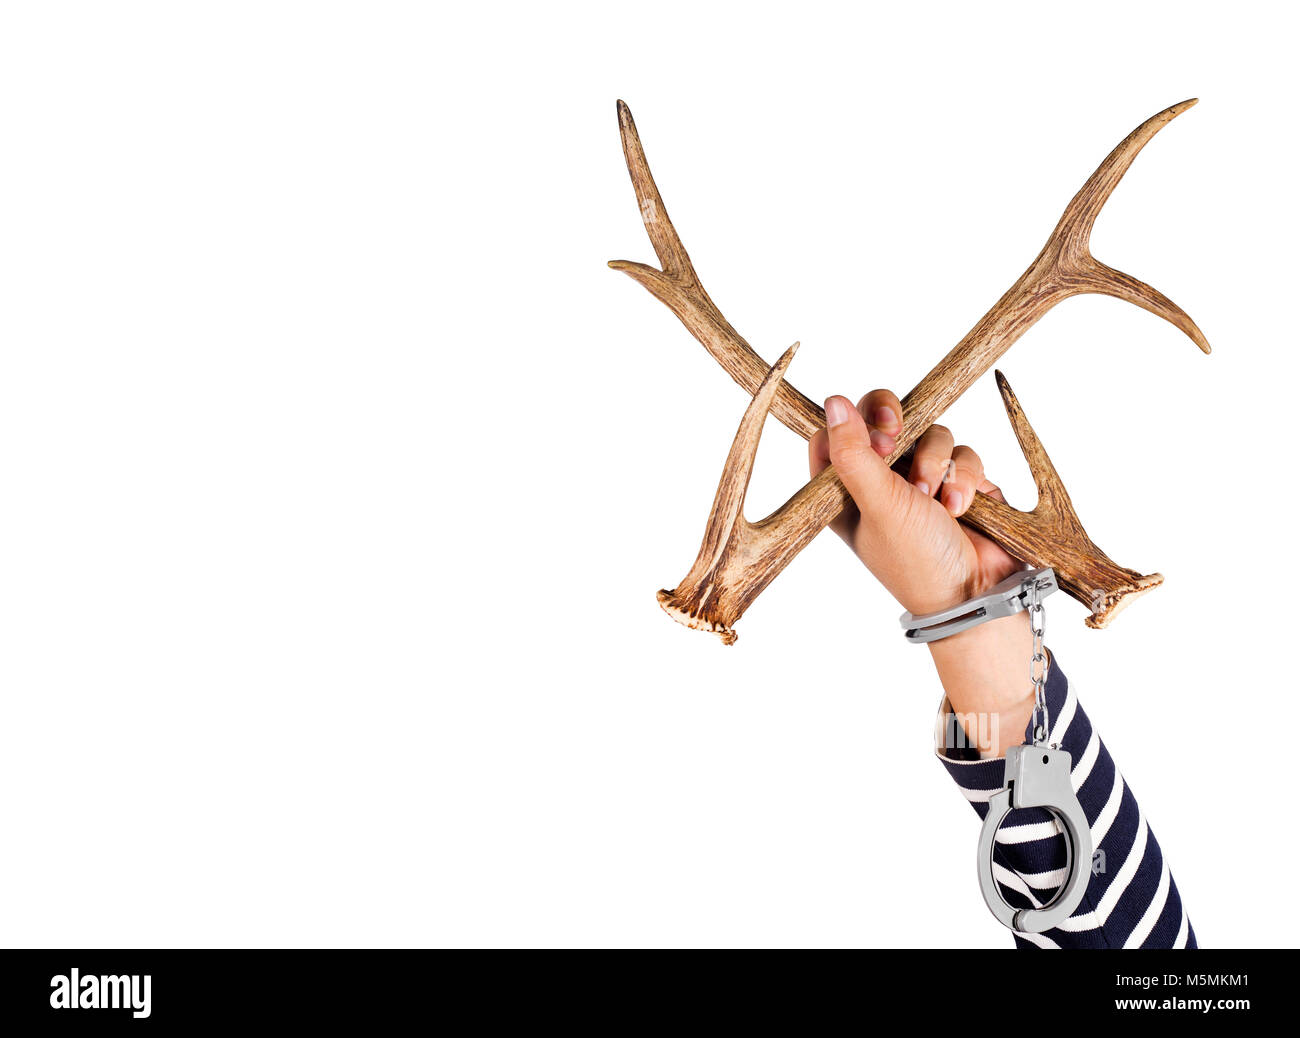 Horn and shackle.Concept of criminal acts and the illegal wildlife trade. - Stock Image